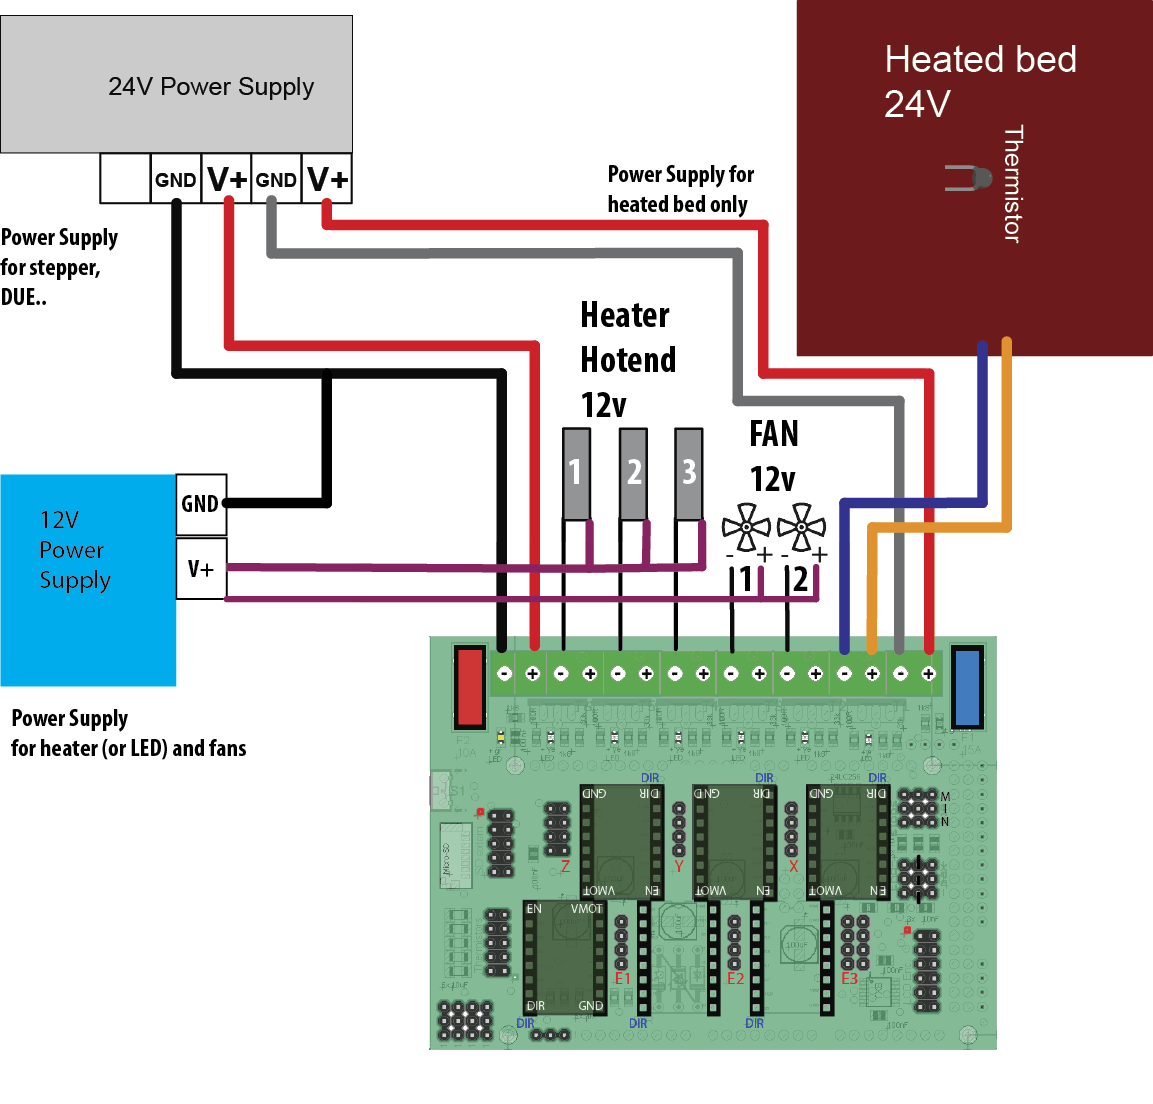 Psu Power Supply Unit And Electrical Good Sizing Radds Wiring Diagram 24v 12v24vpsu